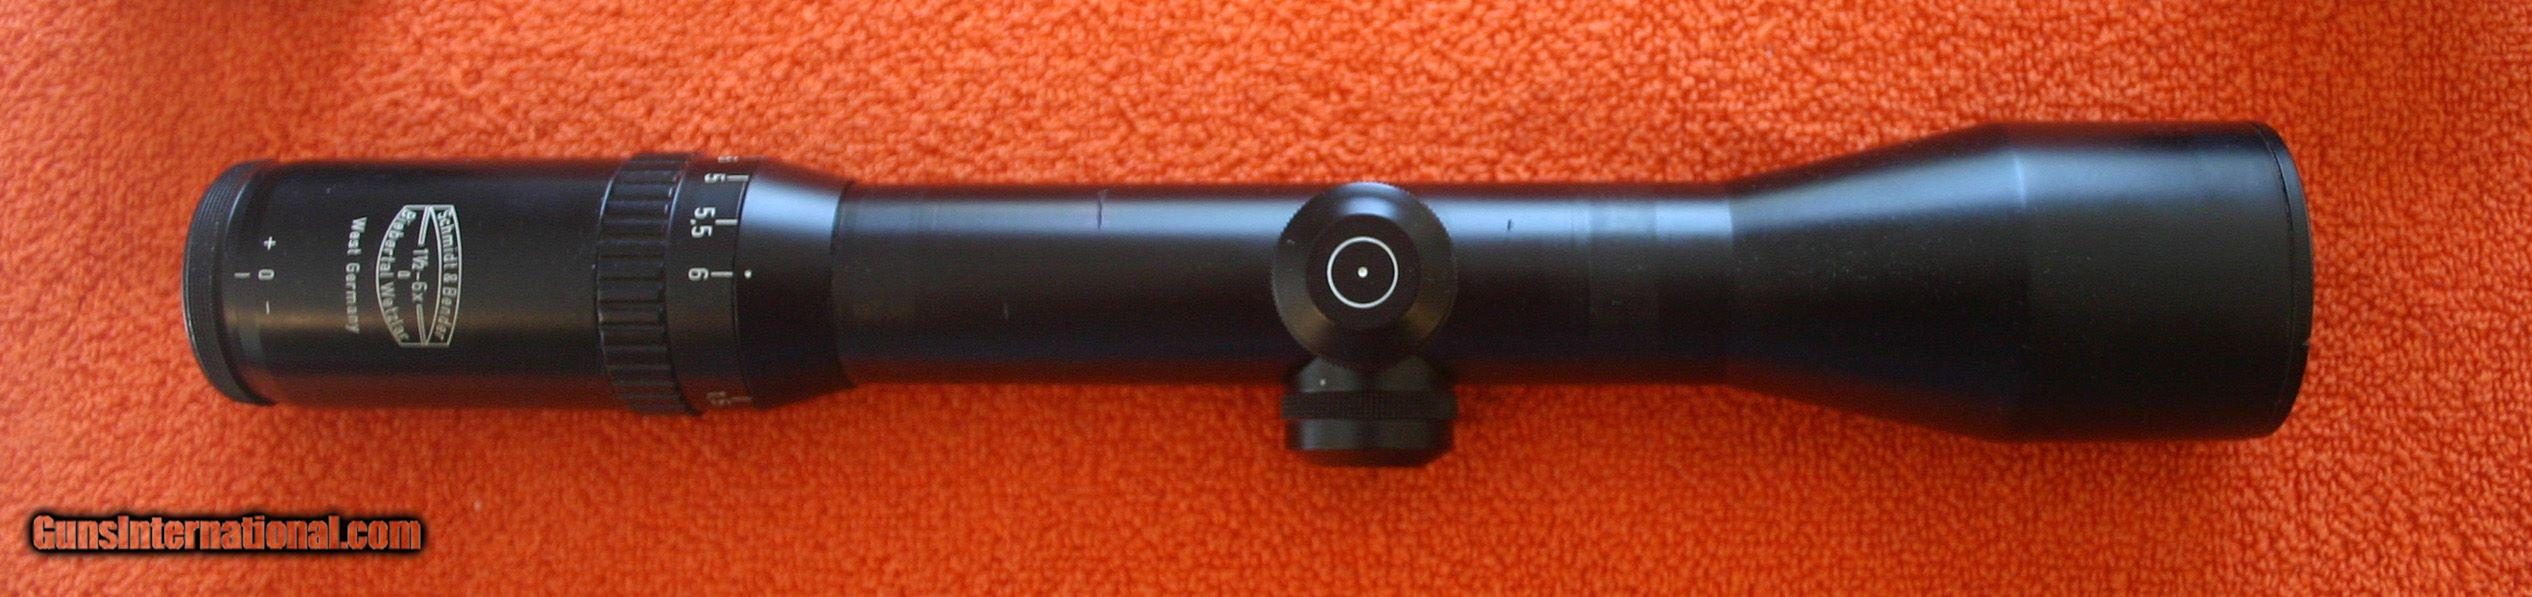 Schmidt-and-Bender-Zenith-1-5-6x42-scope-Used-Perfect-Workings-Perfect-Glass_100965935_2350_AA...jpg